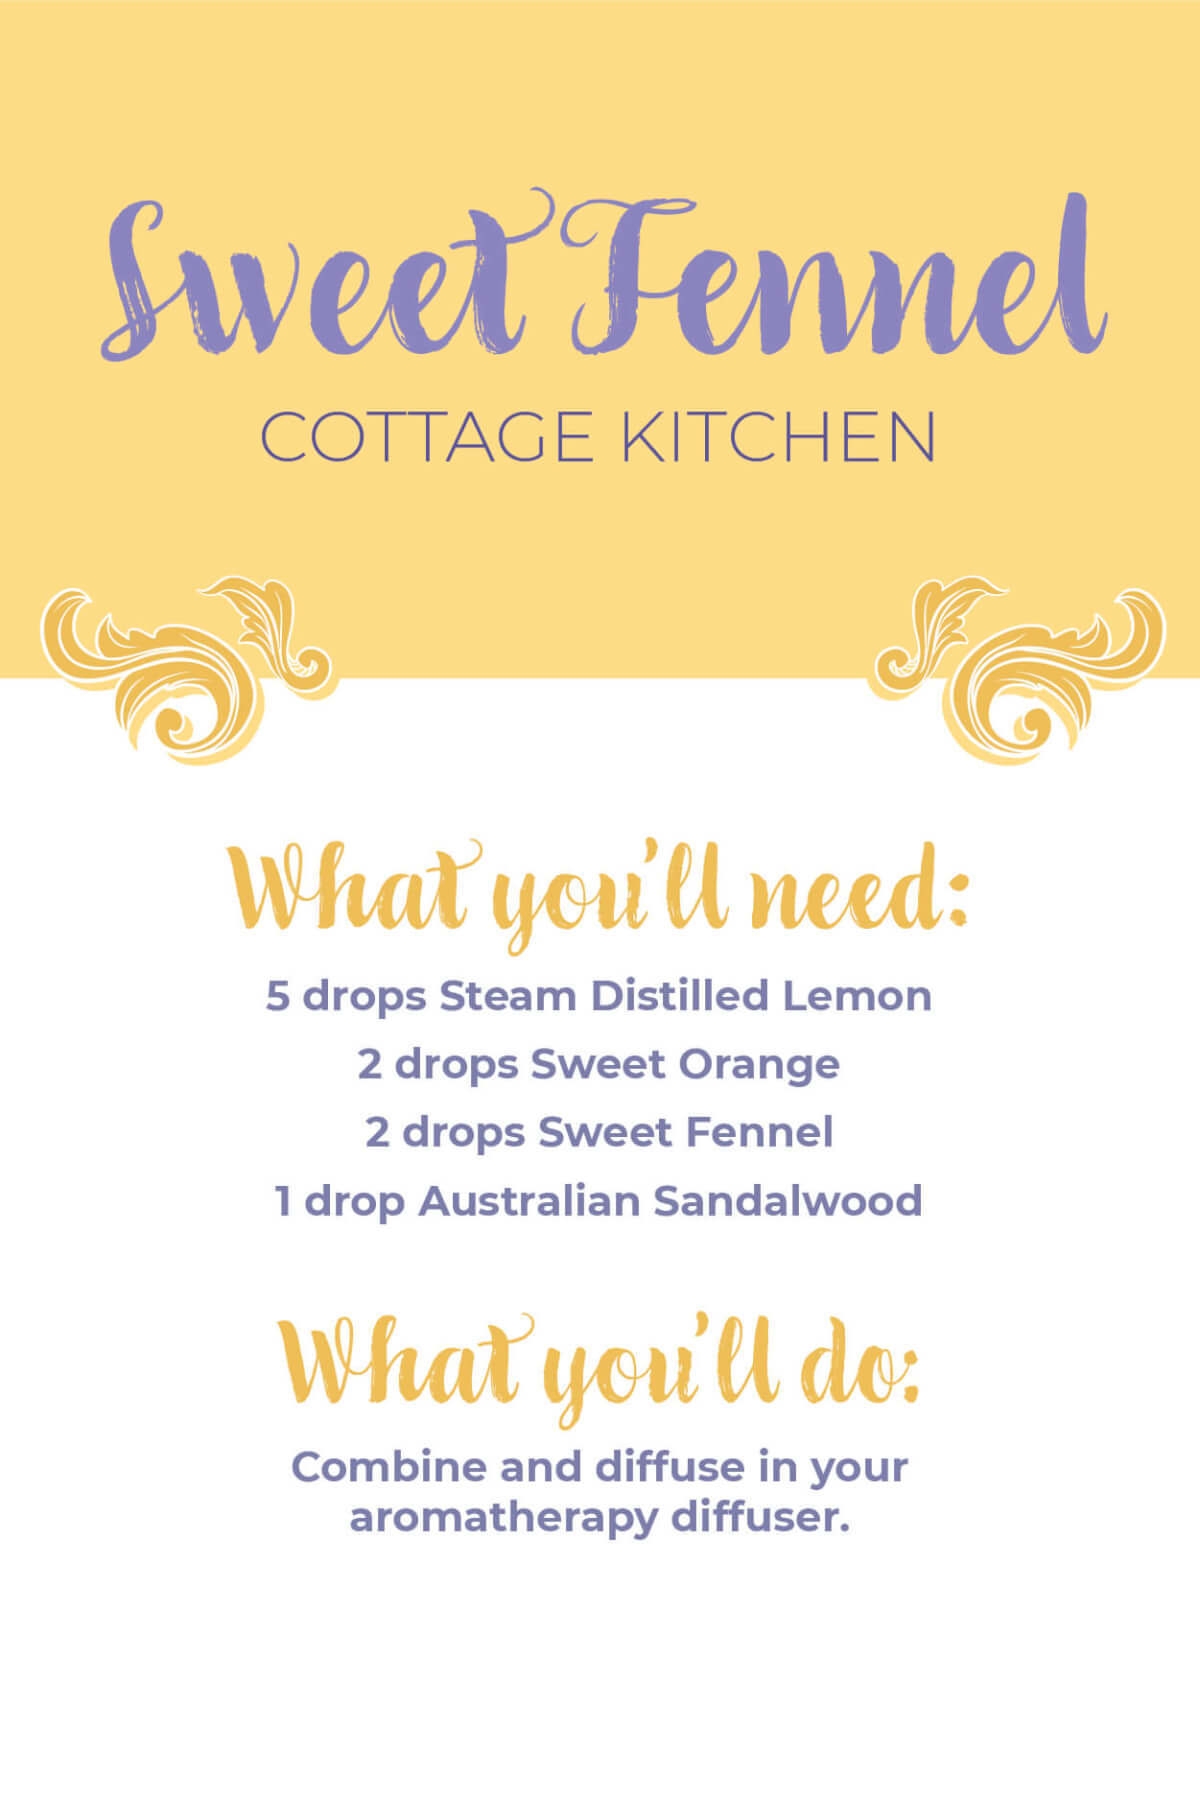 Sweet Fennel Essential Oil Cottage Kitchen Diffuser Blend